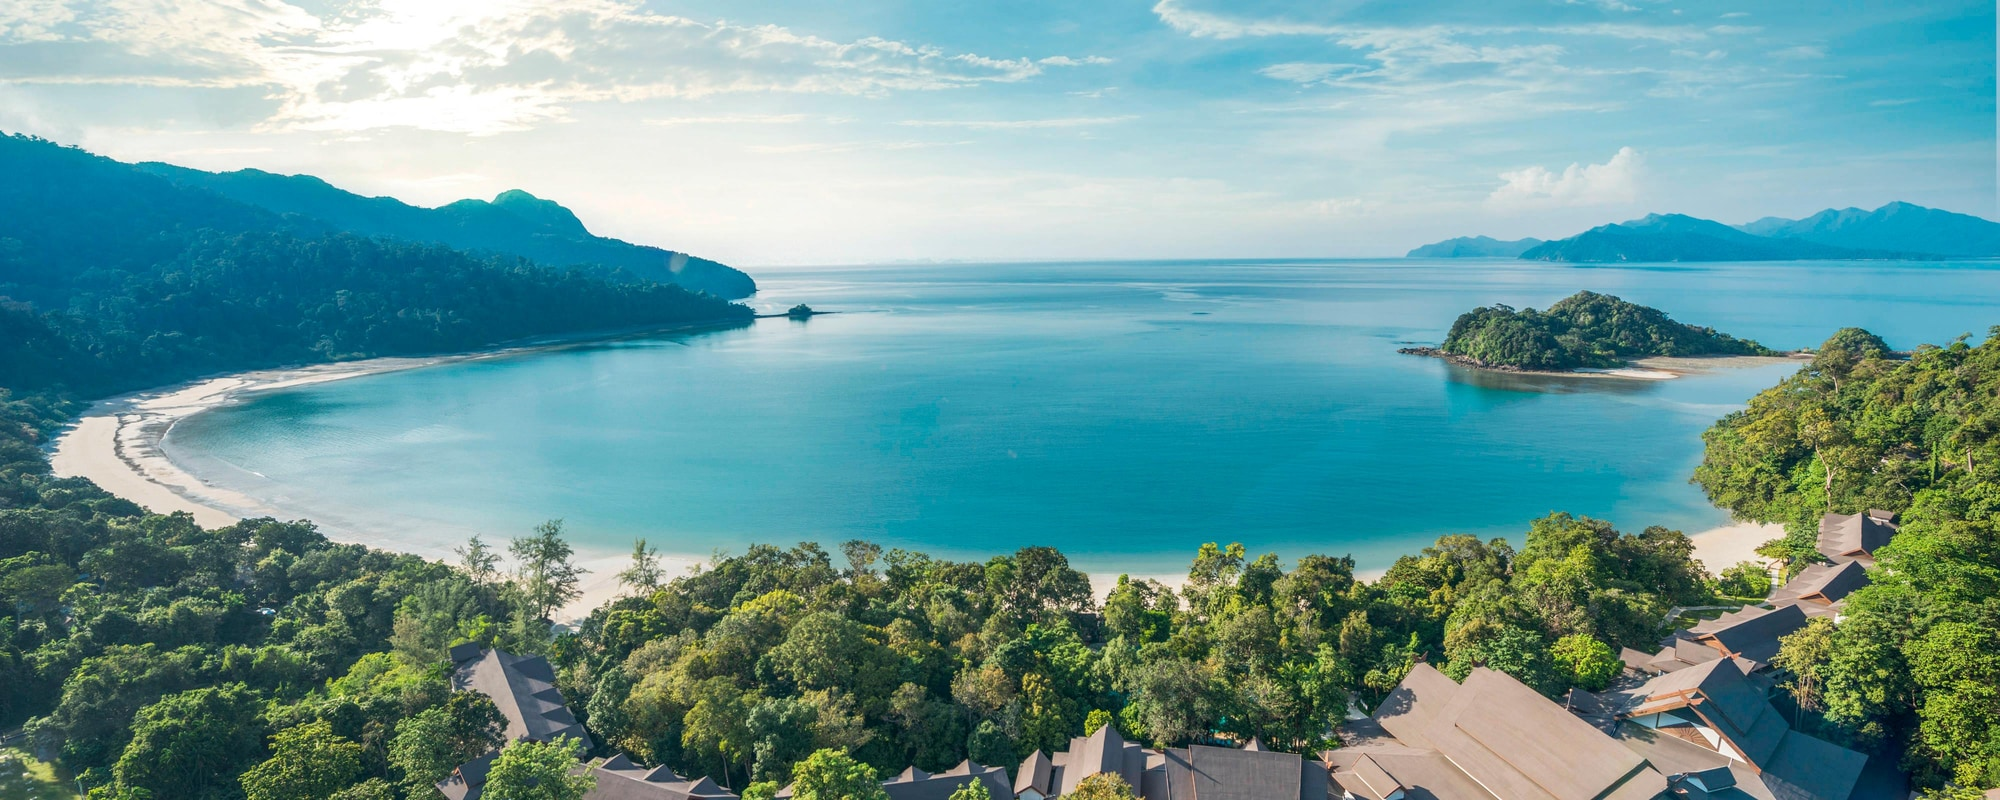 Luxury Resort Hotel in Langkawi | The Andaman, a Luxury Collection ...